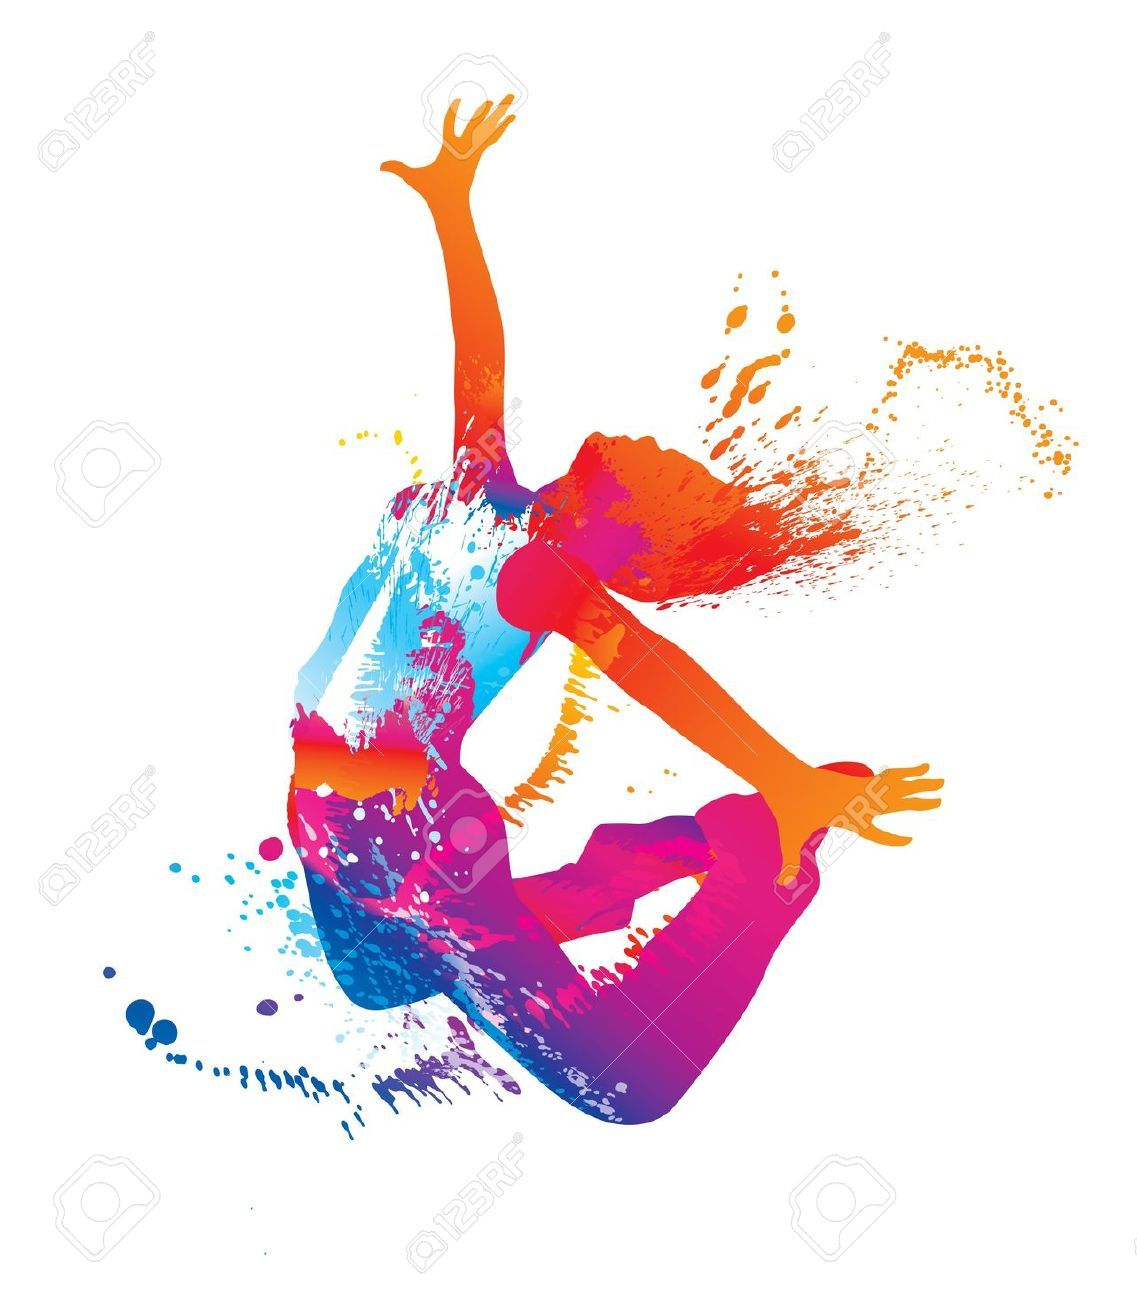 Clipart dancers silhouette with ink splashes